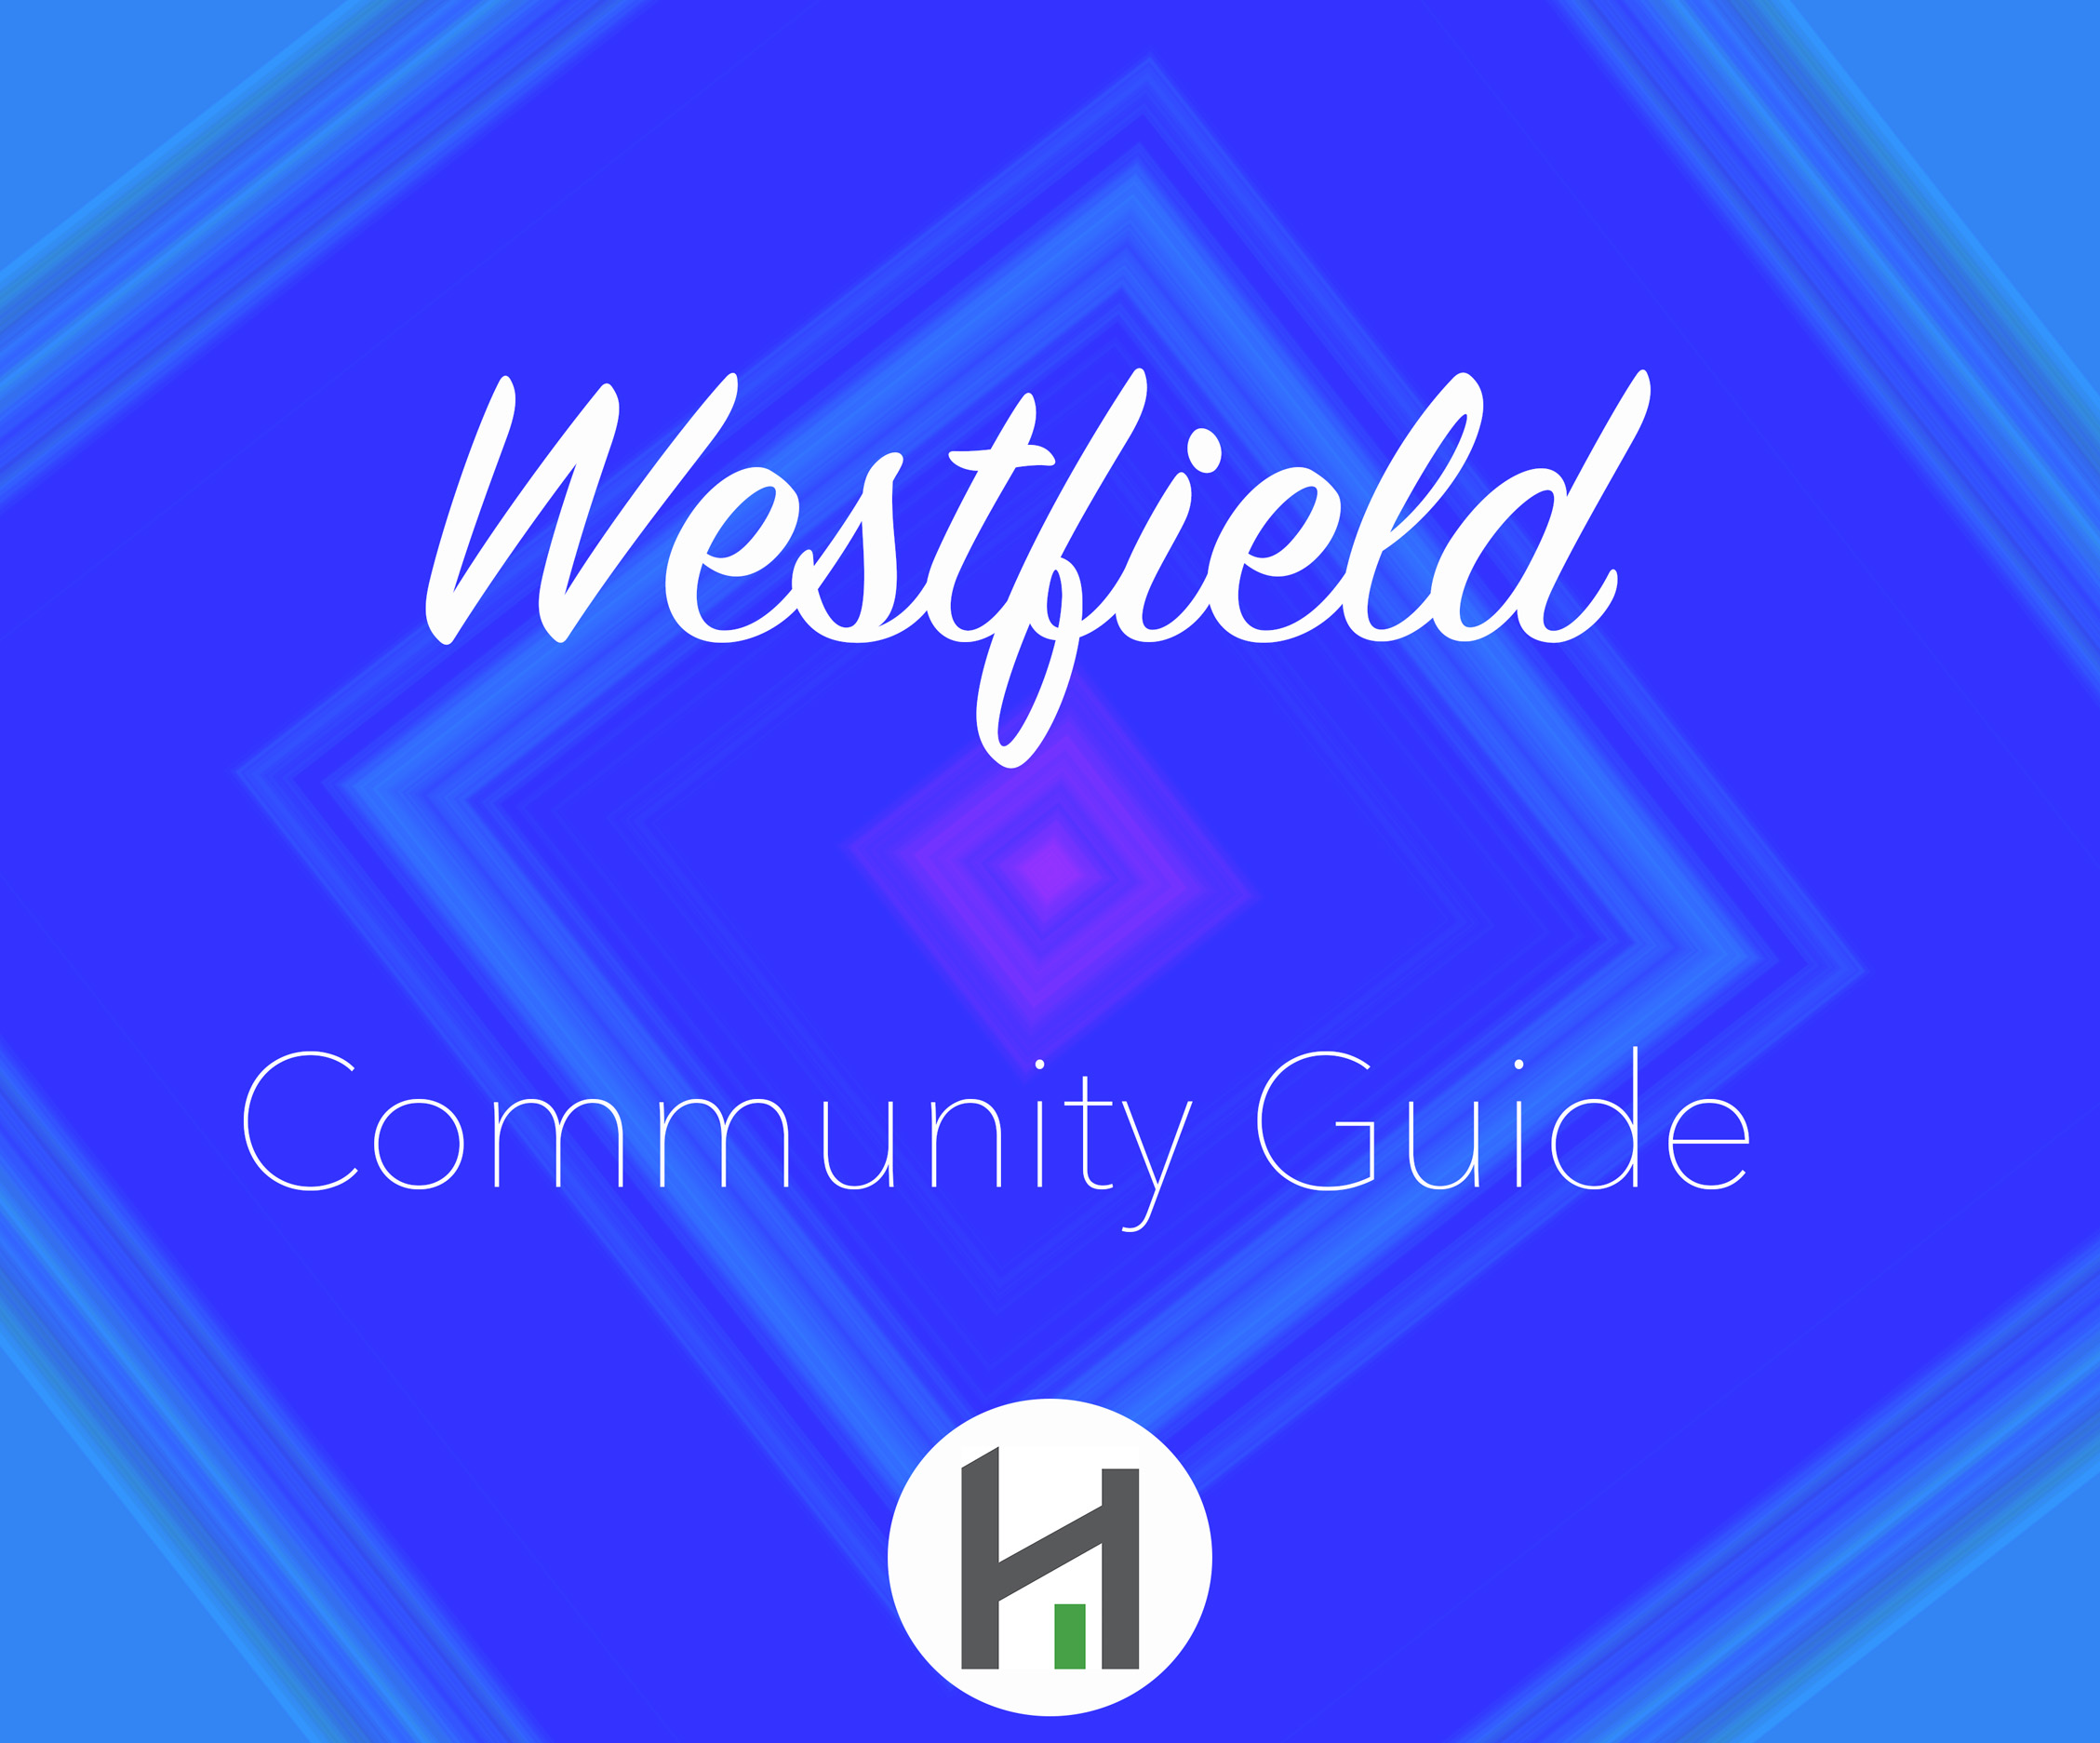 Westfield South Subdivision Community Guide - find real estate in Westfield South in Bozeman MT!